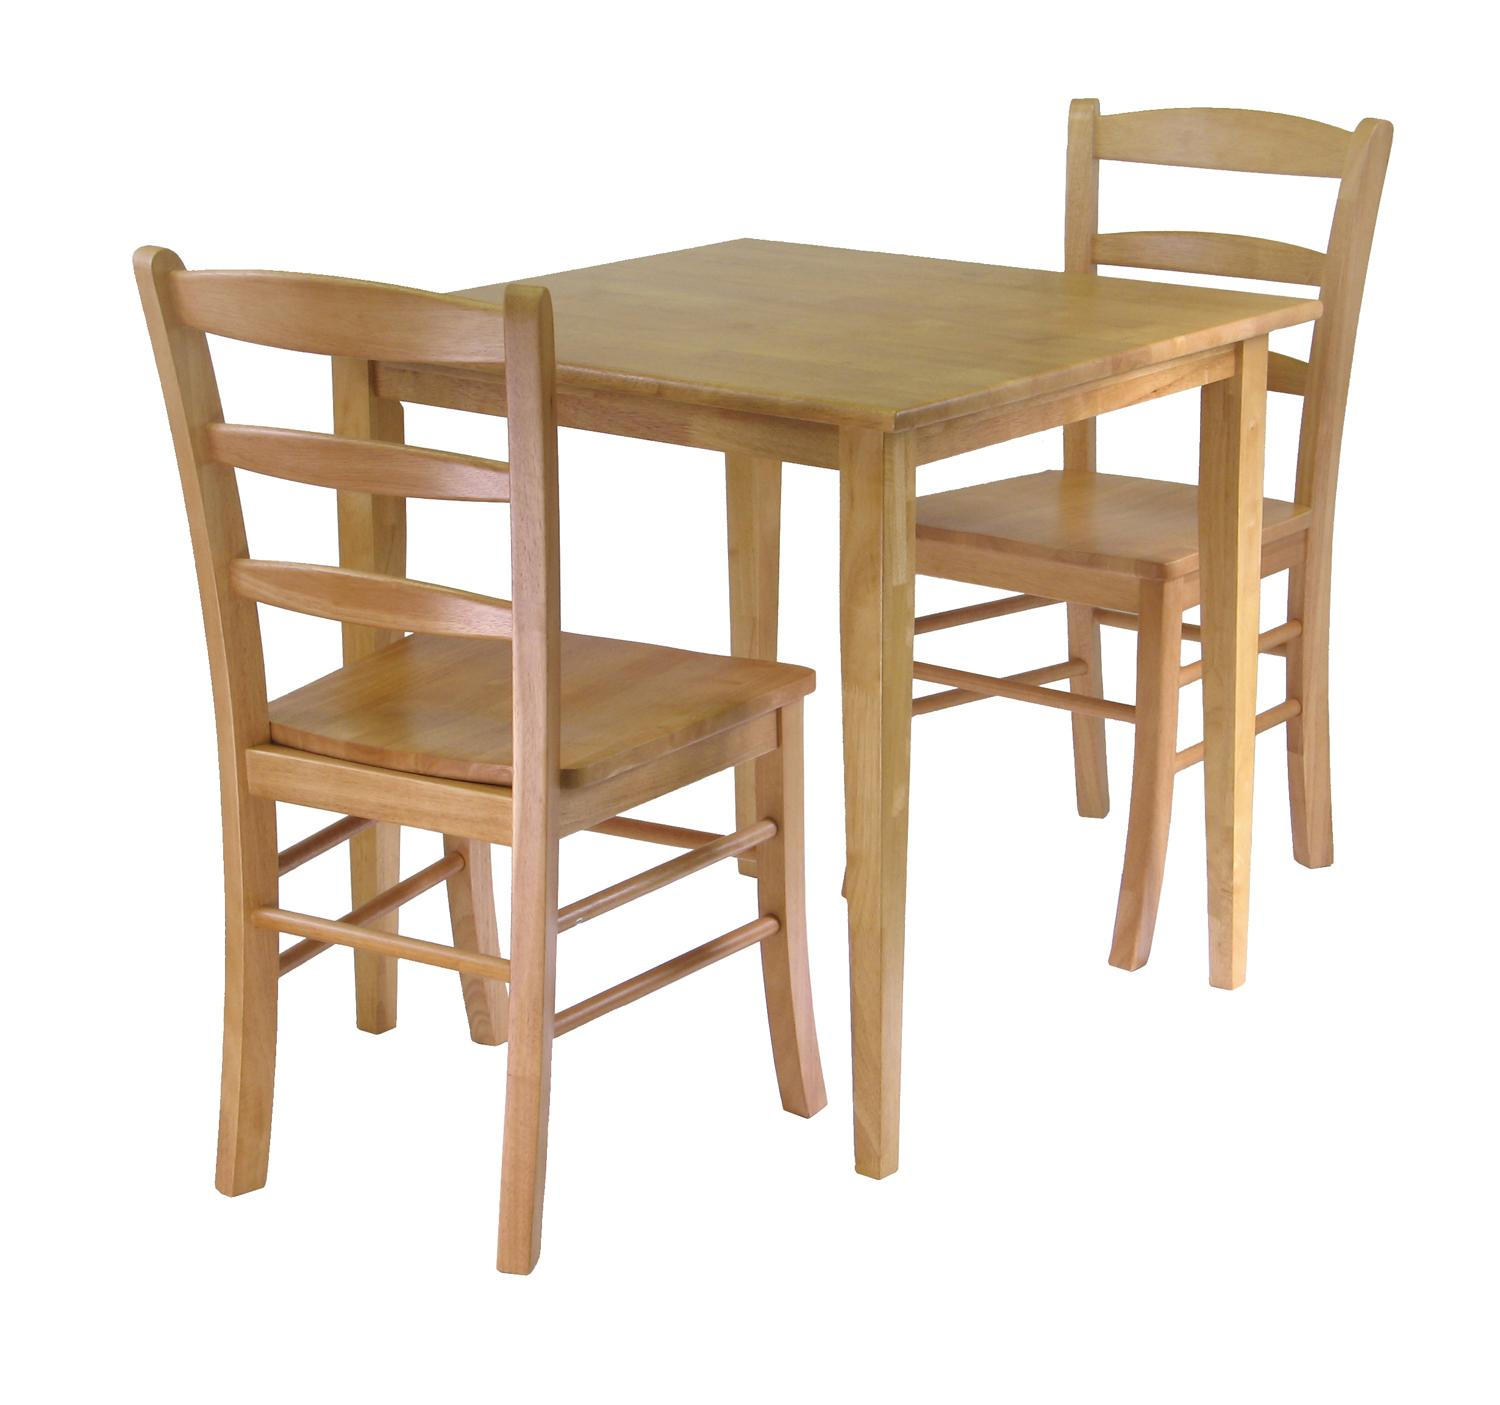 Groveland 3pc Dining Set Square Table with 2 Chairs - [34330]  sc 1 st  OJ Commerce & Groveland 3pc Dining Set Square Table with 2 Chairs - $221.10 ...